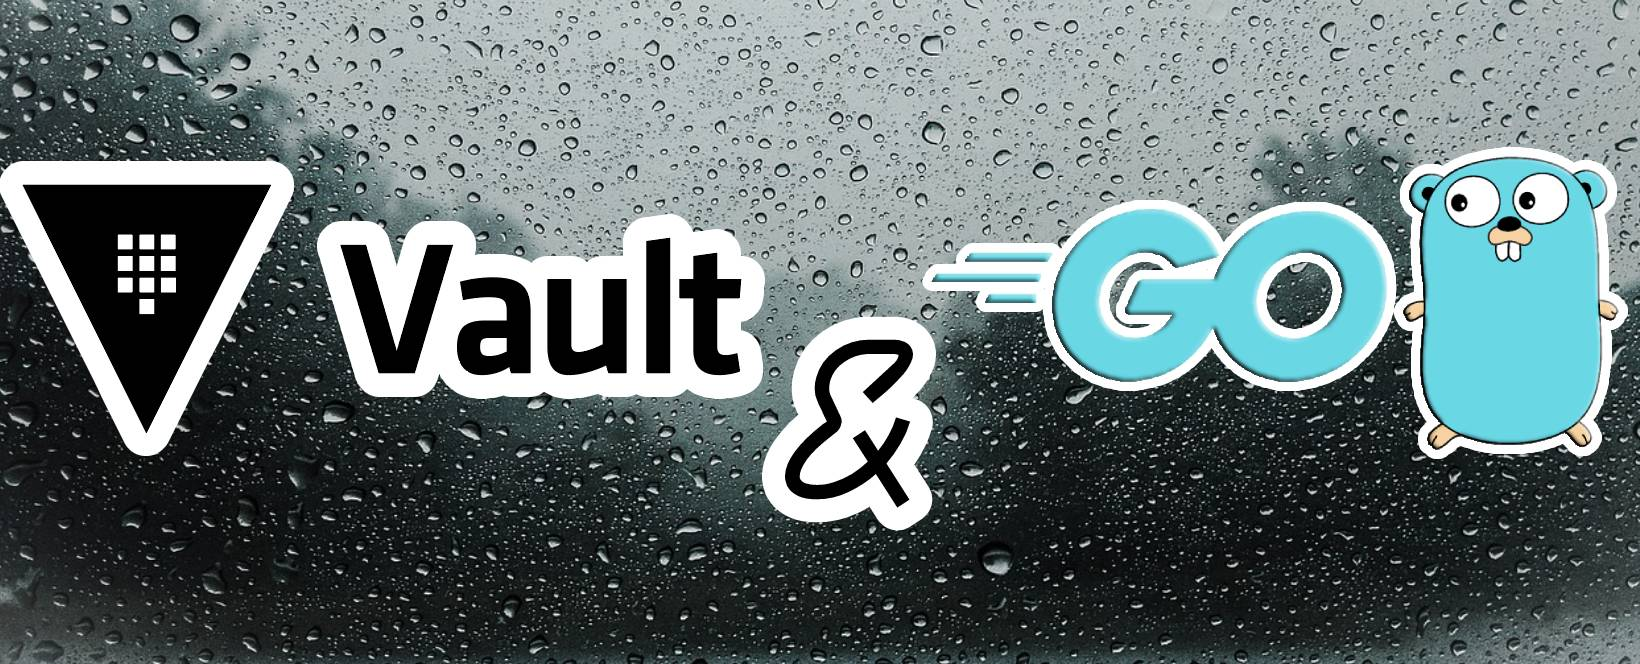 vault and go logos